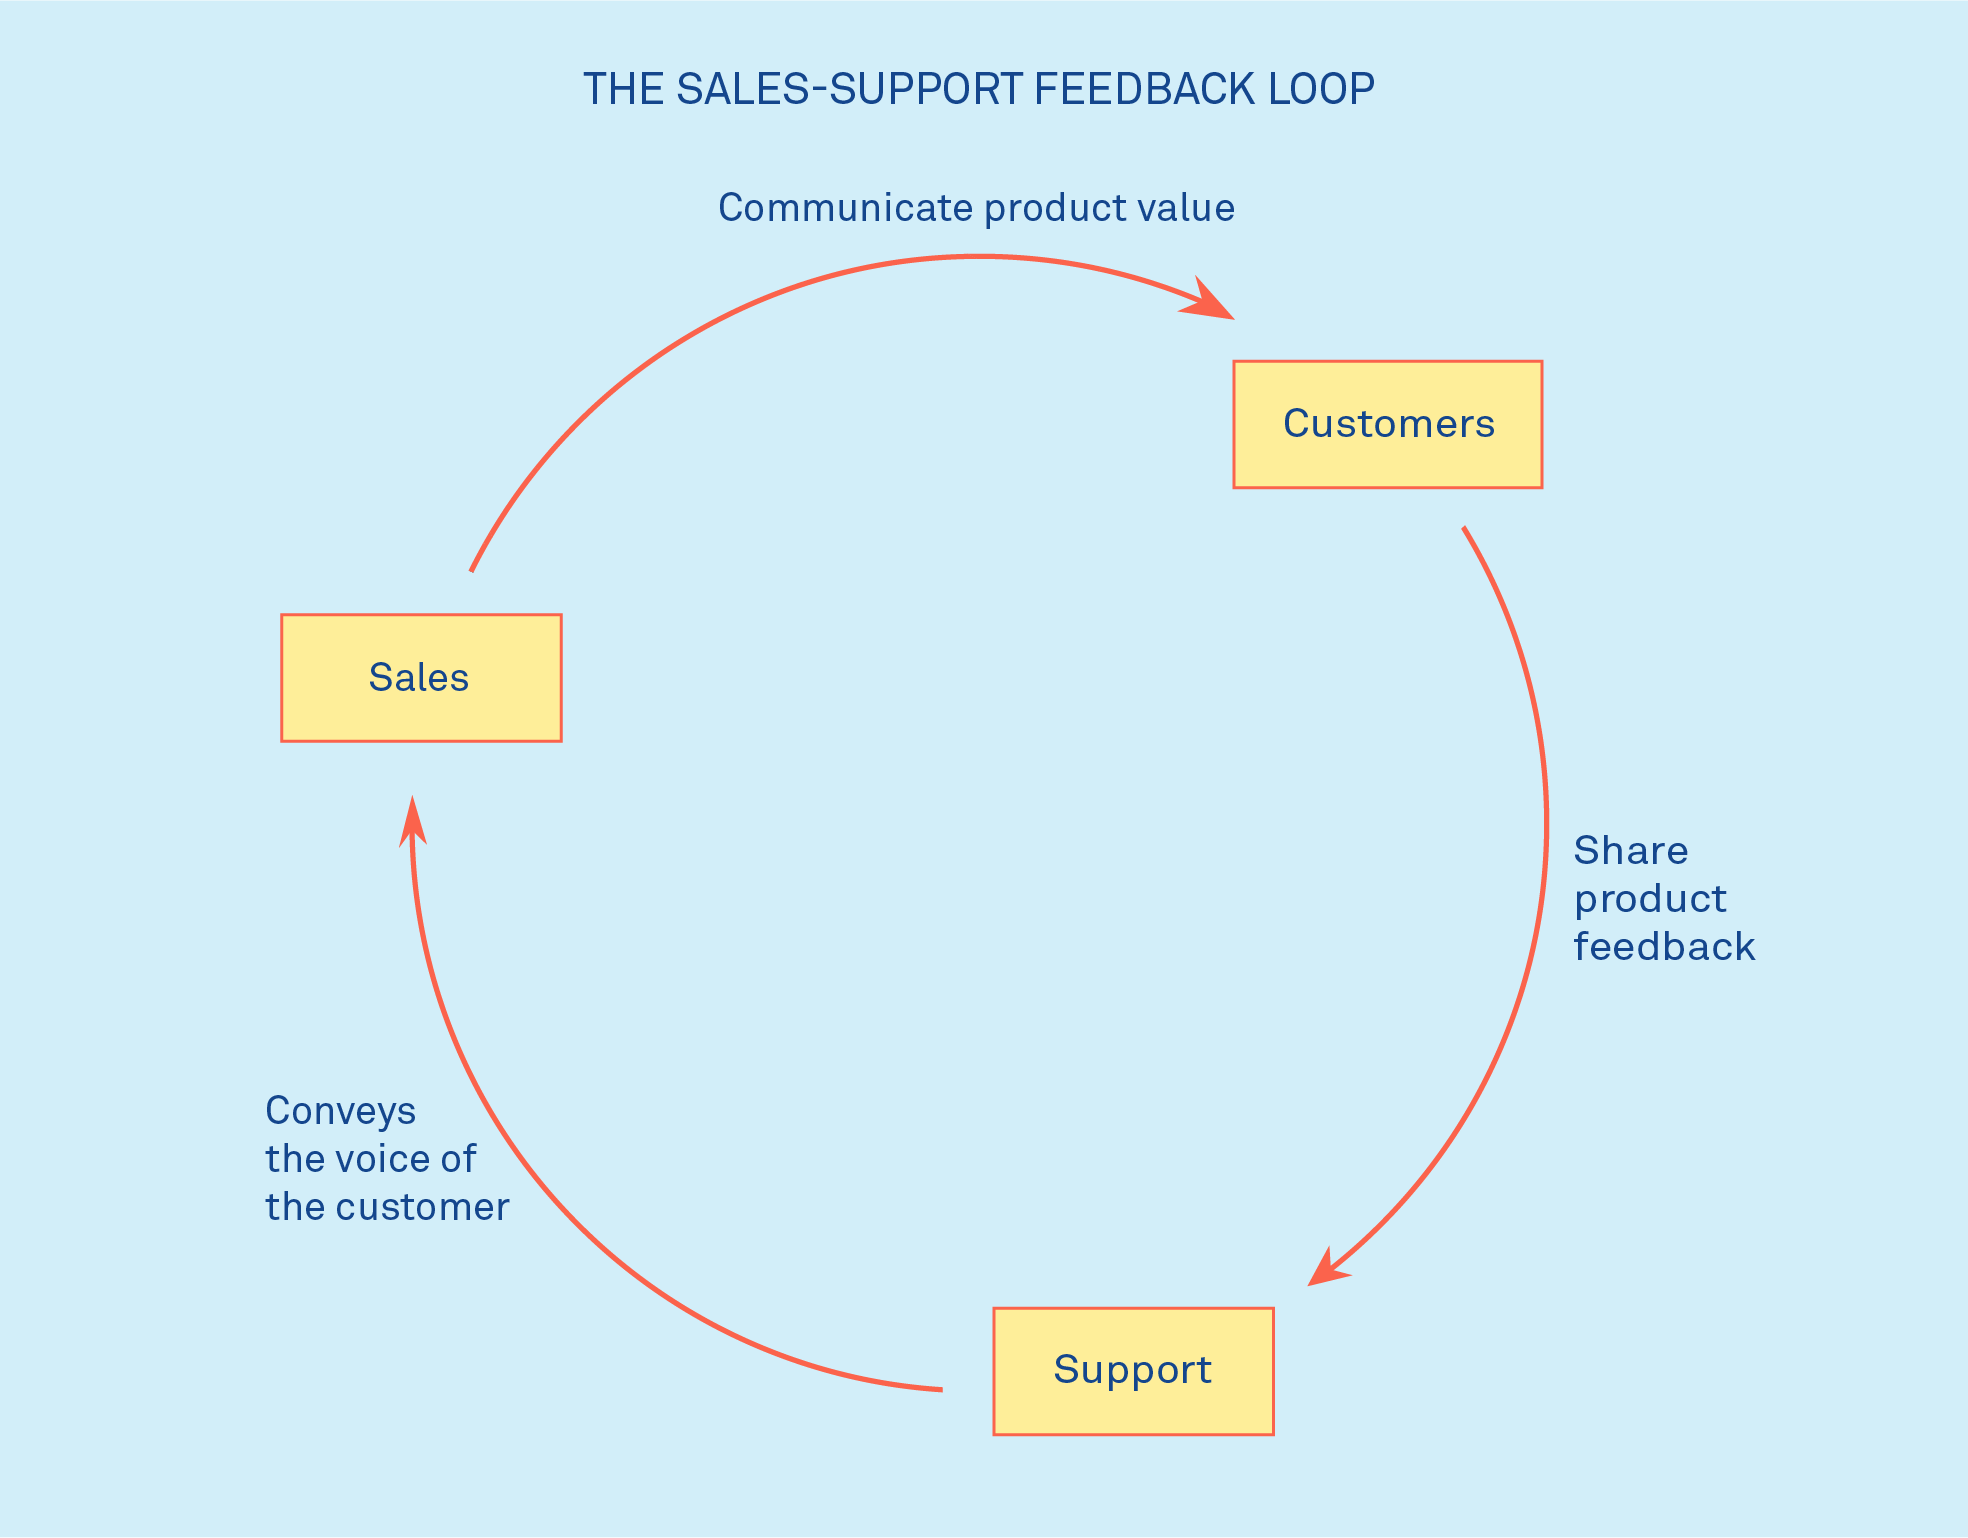 Sales-Support feedback loop